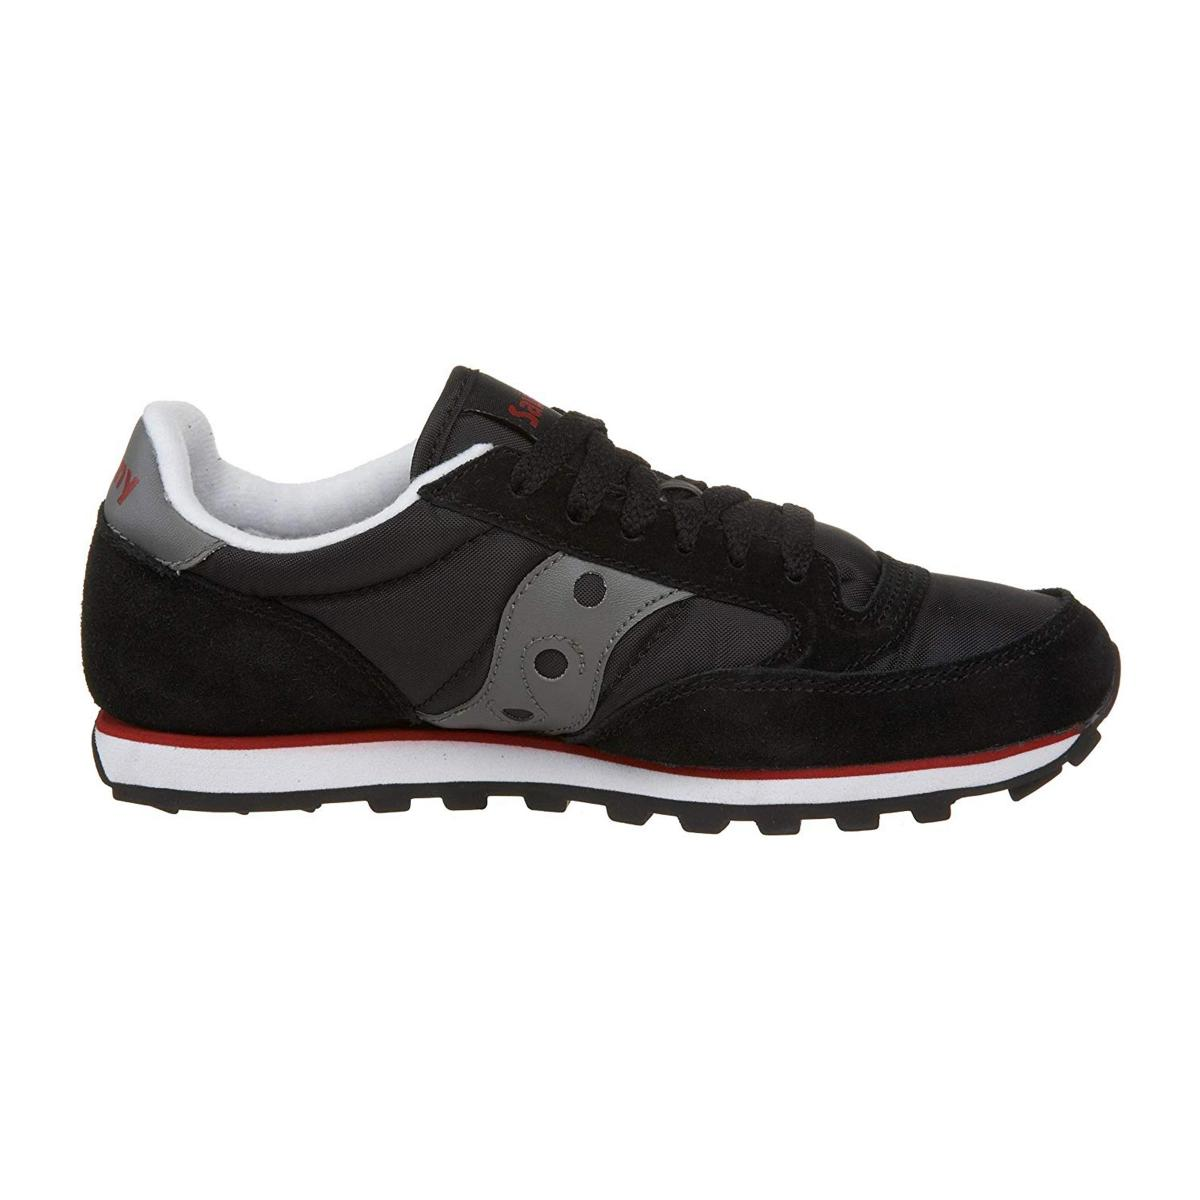 Scarpe Sneakers Saucony Jazz Low Pro Donna Rif. 1866-7